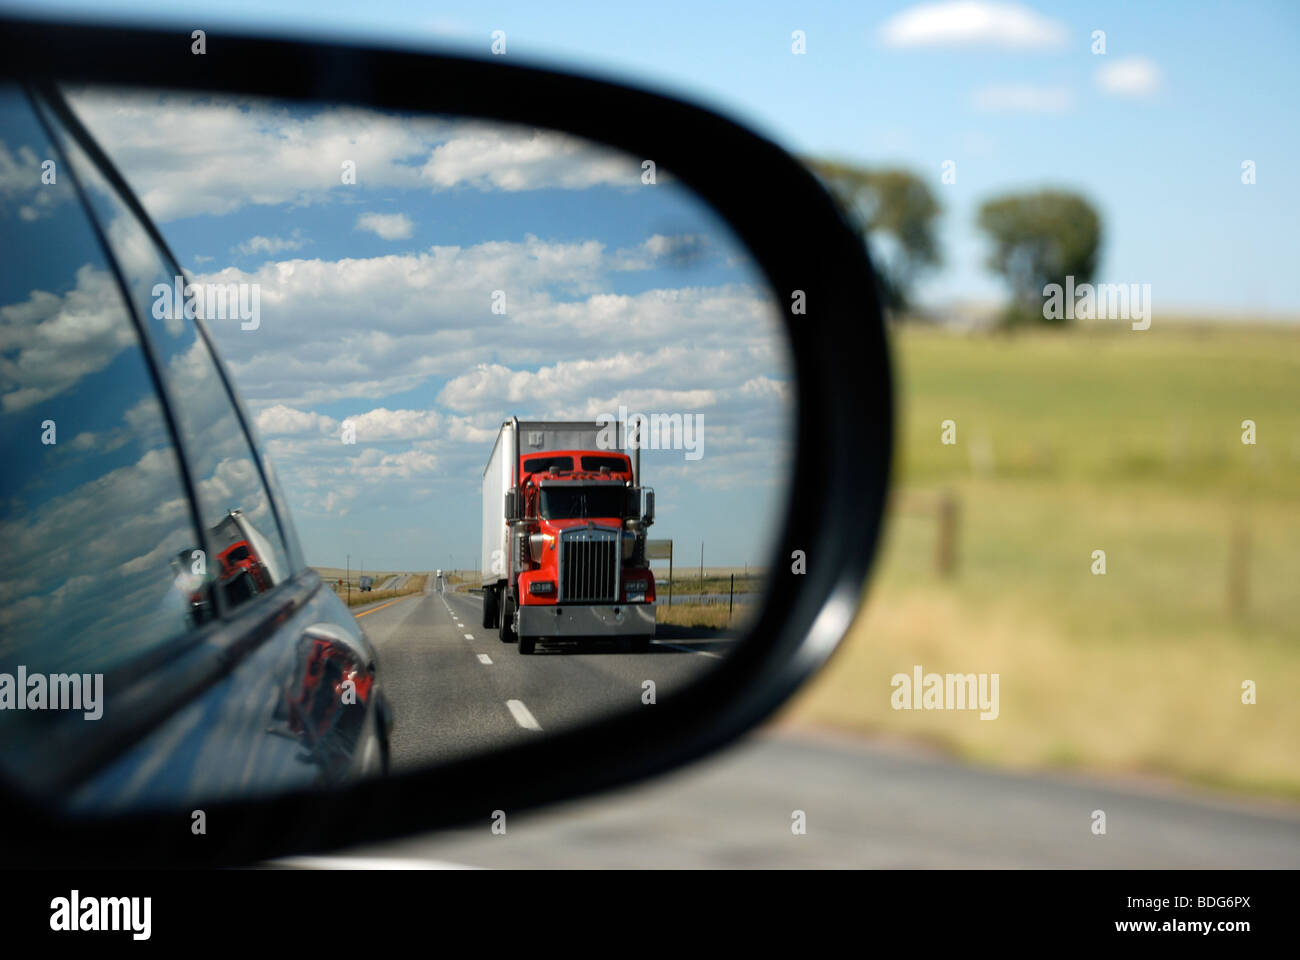 Truck in rear view mirror - Stock Image